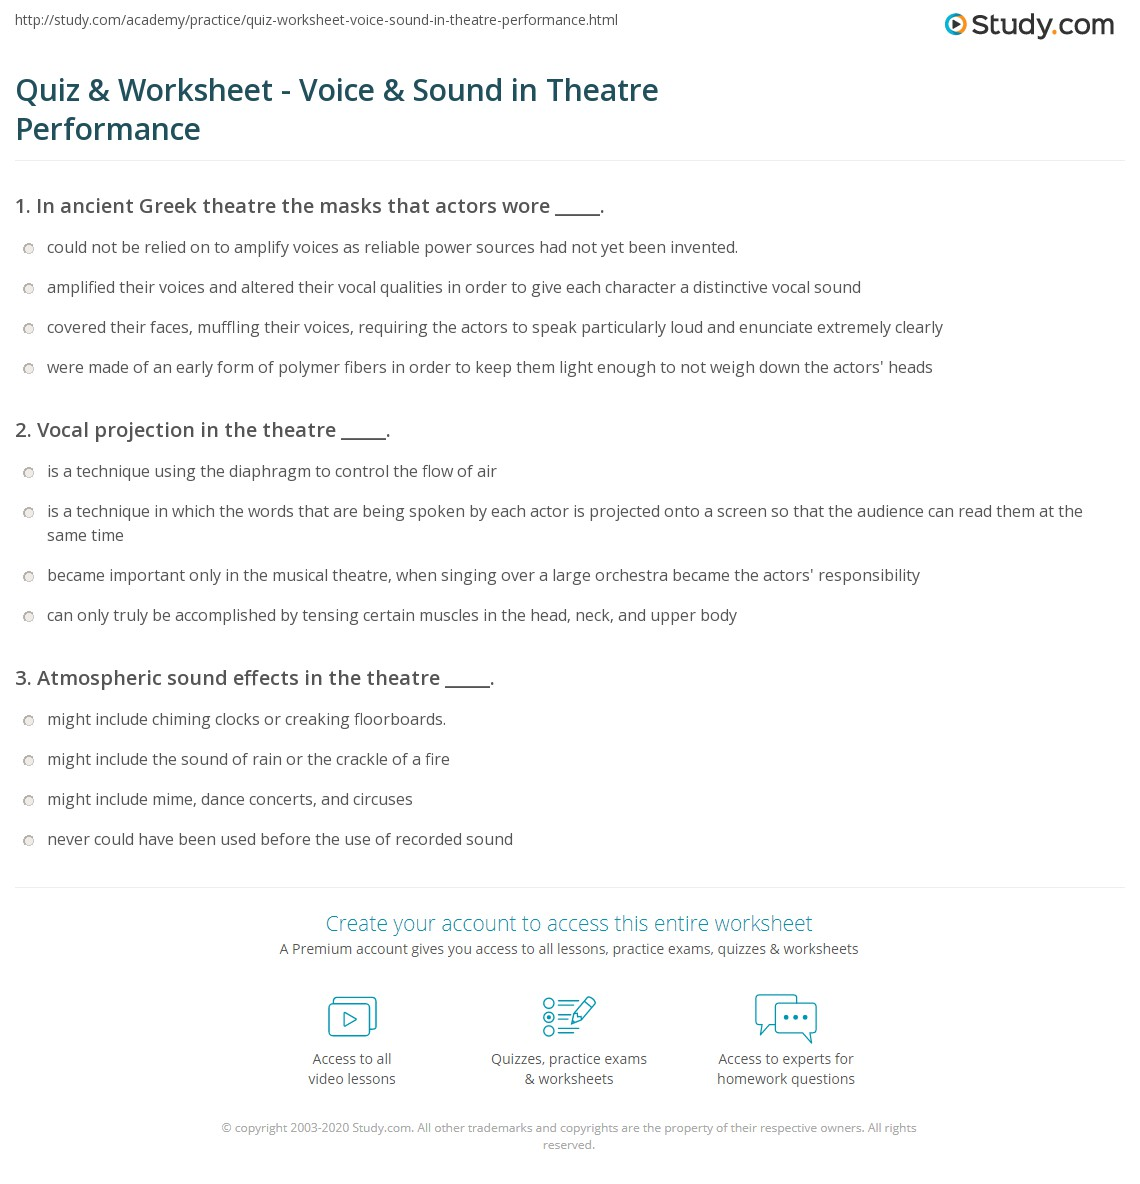 Quiz & Worksheet - Voice & Sound in Theatre Performance